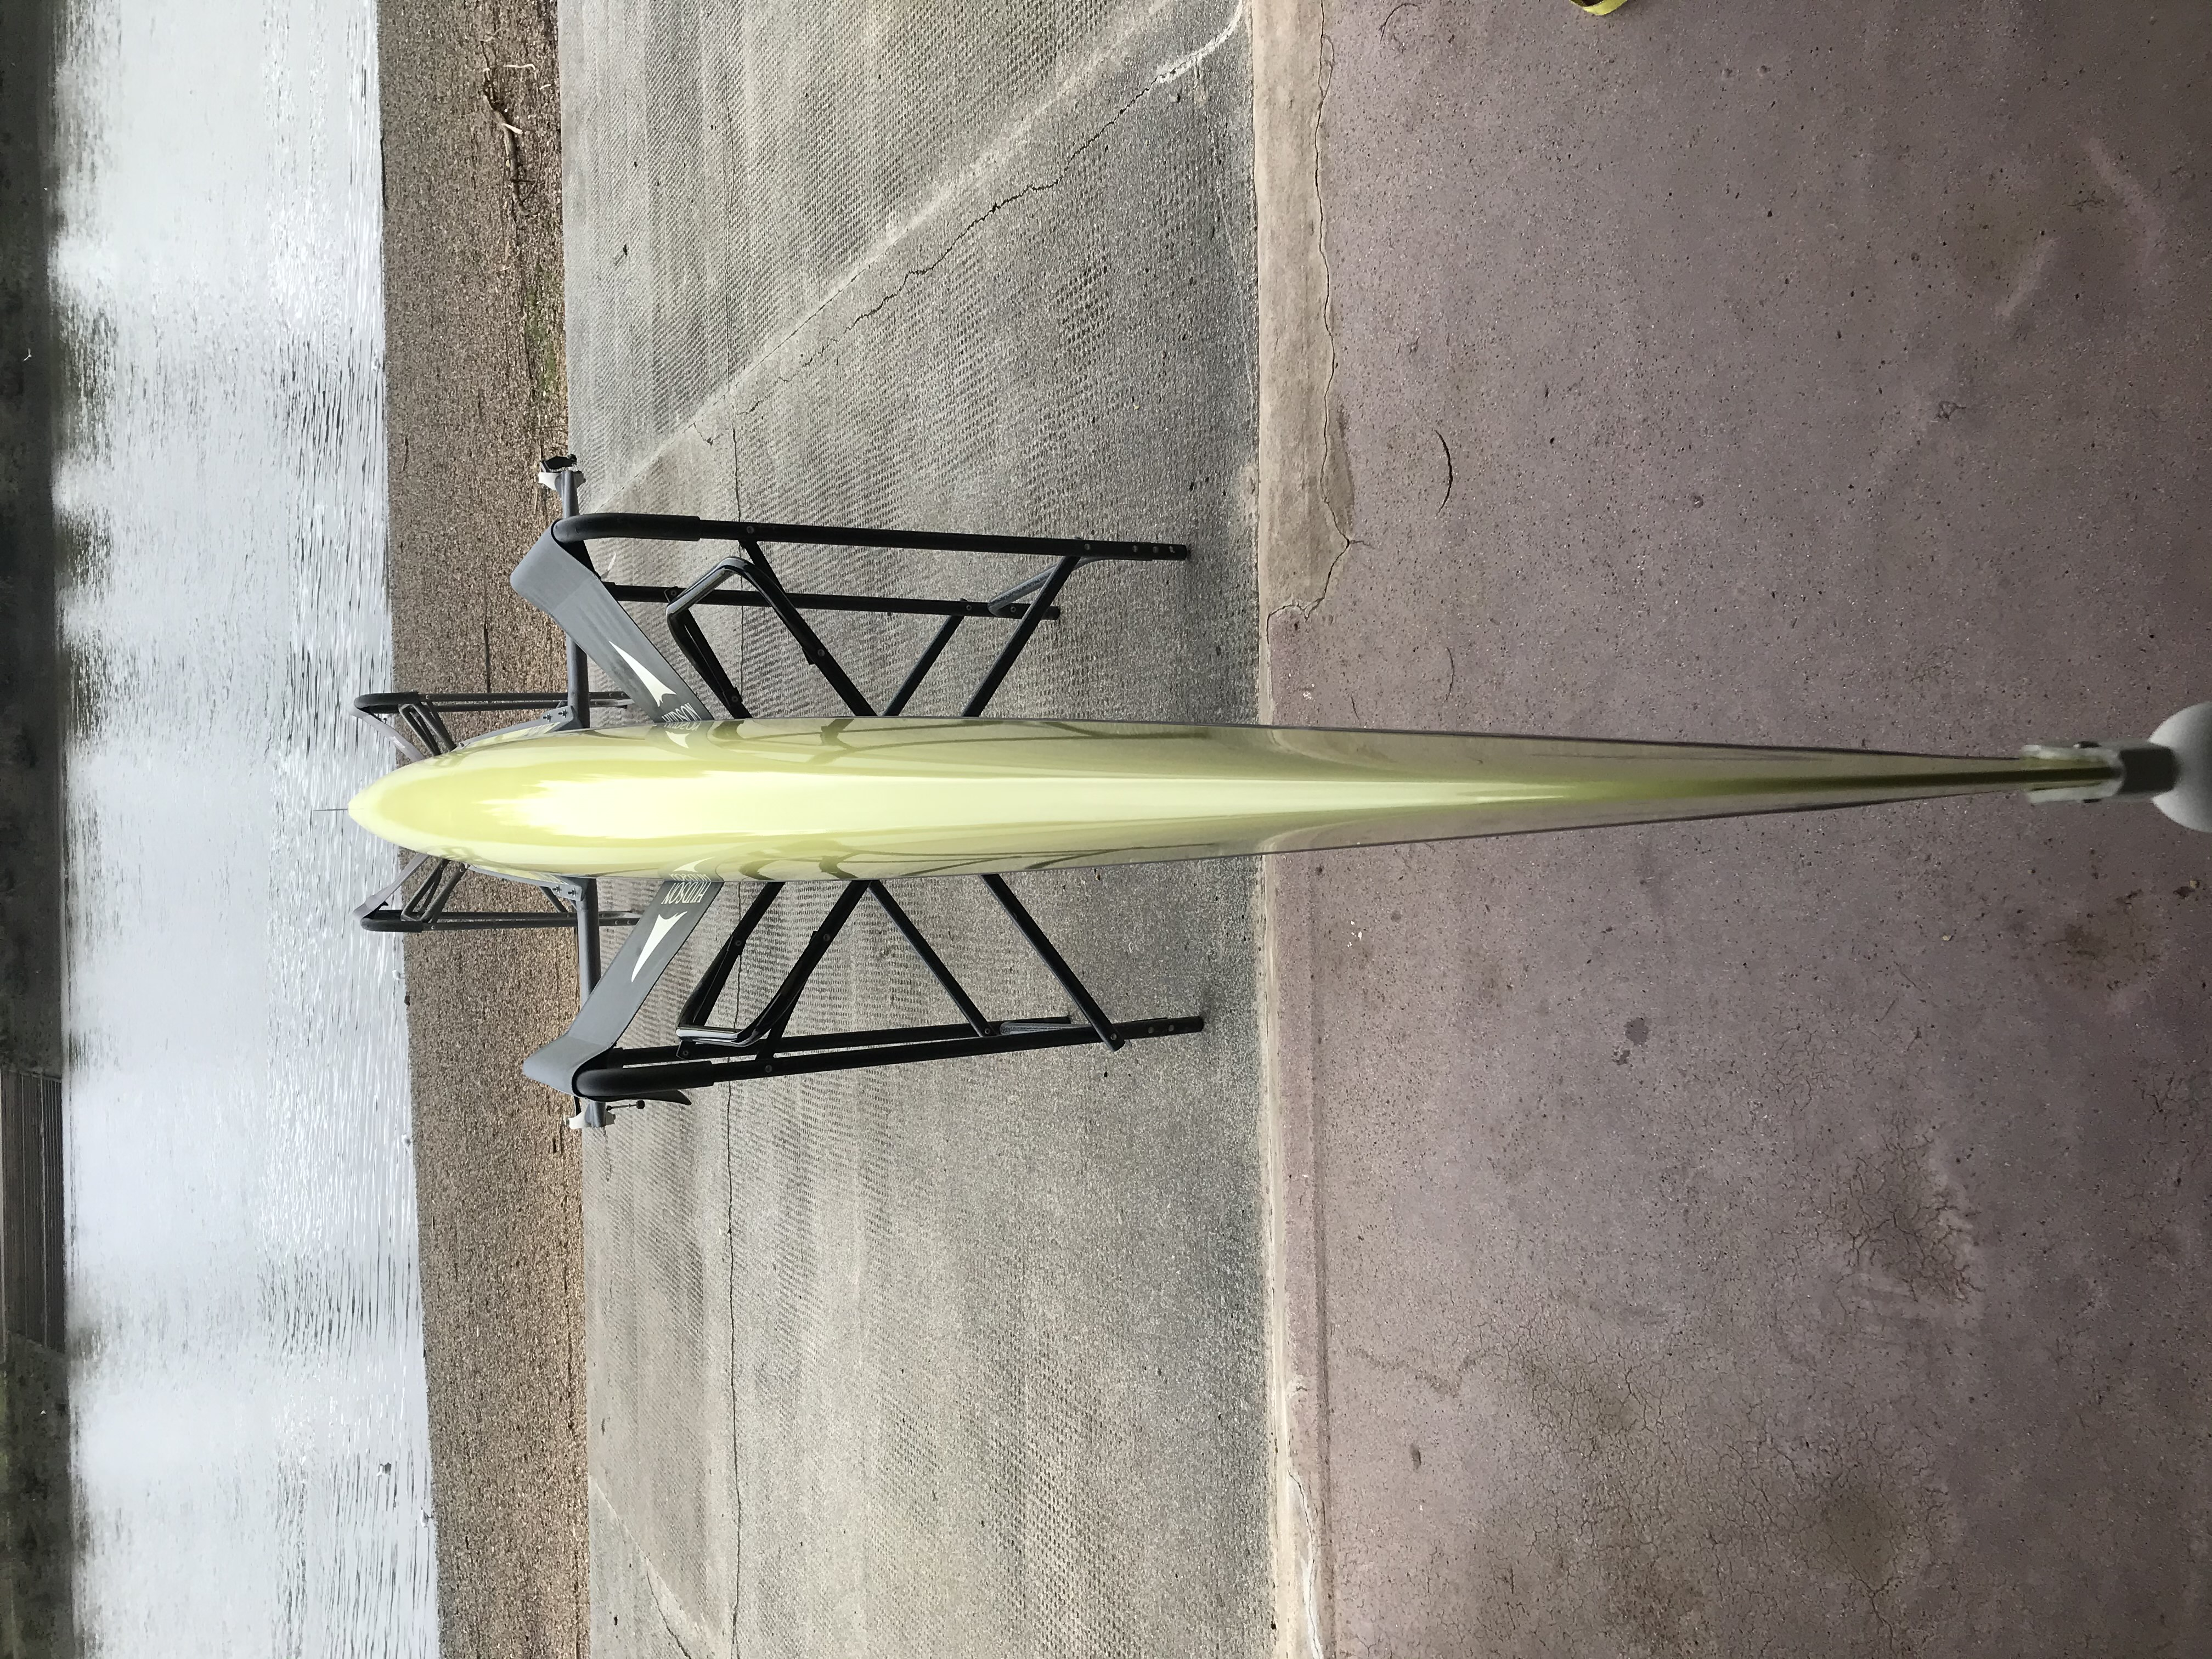 For Sale - Empacher Reverse Wing 1x (75-85)